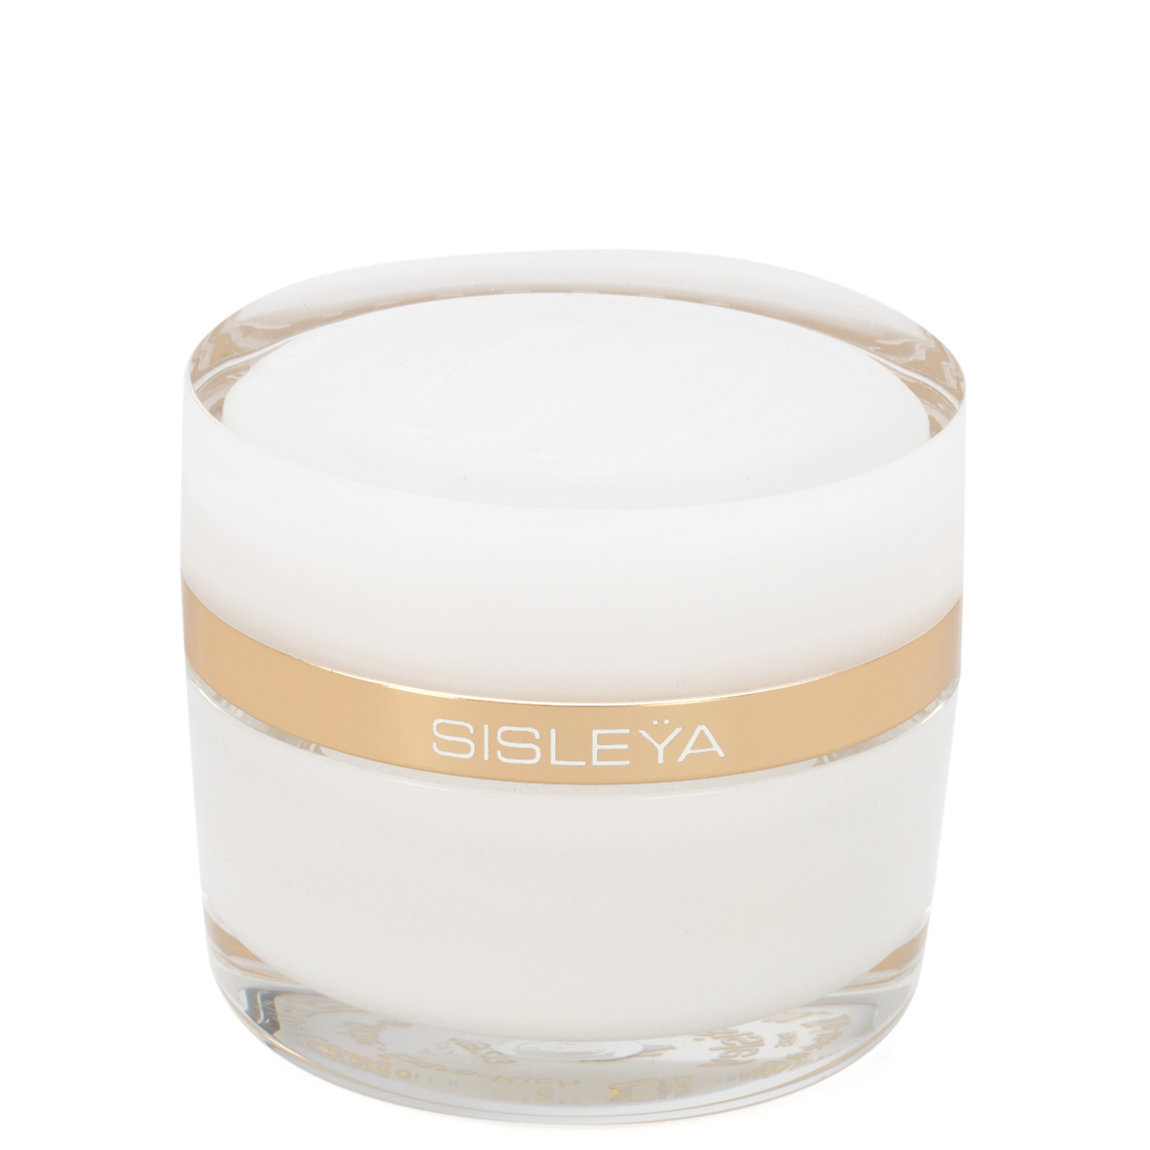 Sisley-Paris Sisleÿa L'Intégral Anti-Age Extra-Rich alternative view 1 - product swatch.